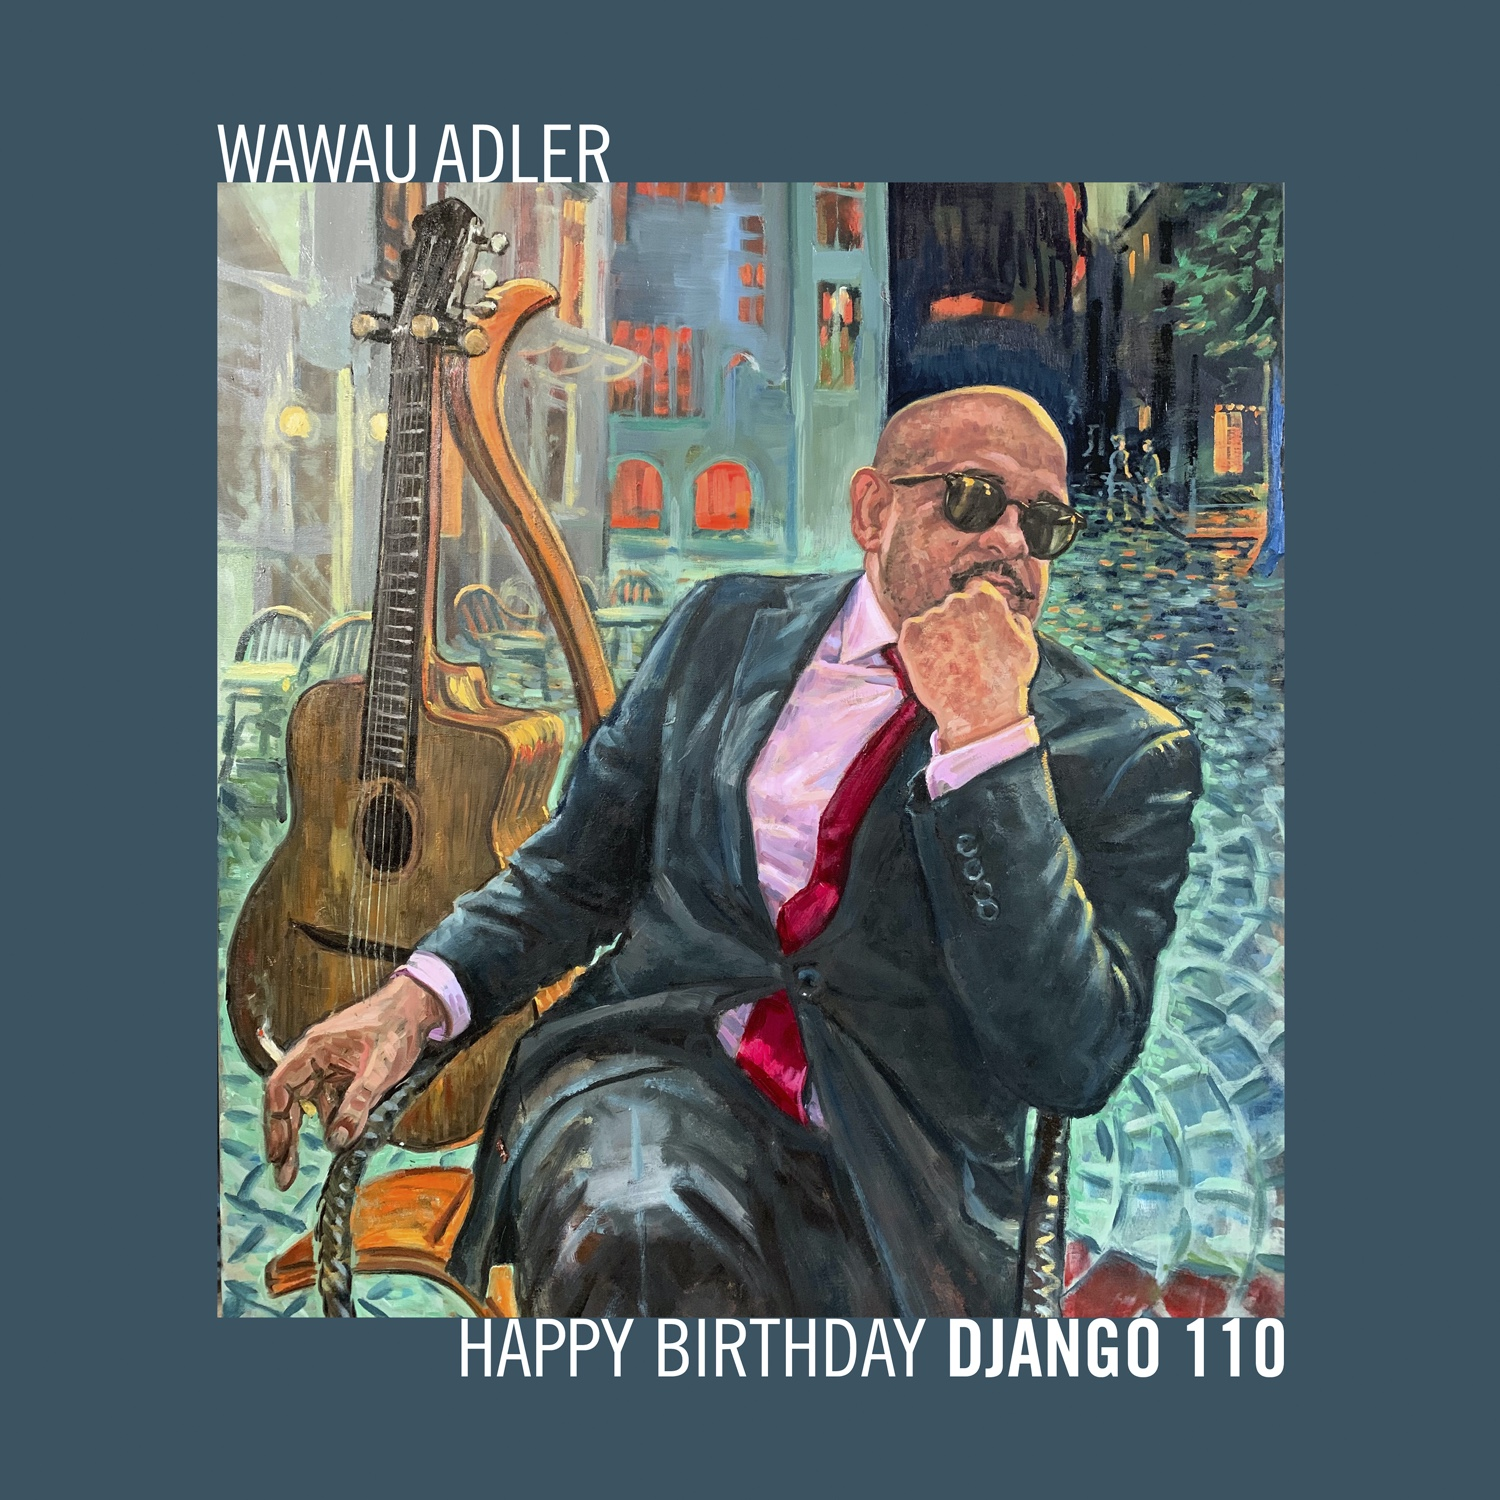 wawau adler happy birthday django 110